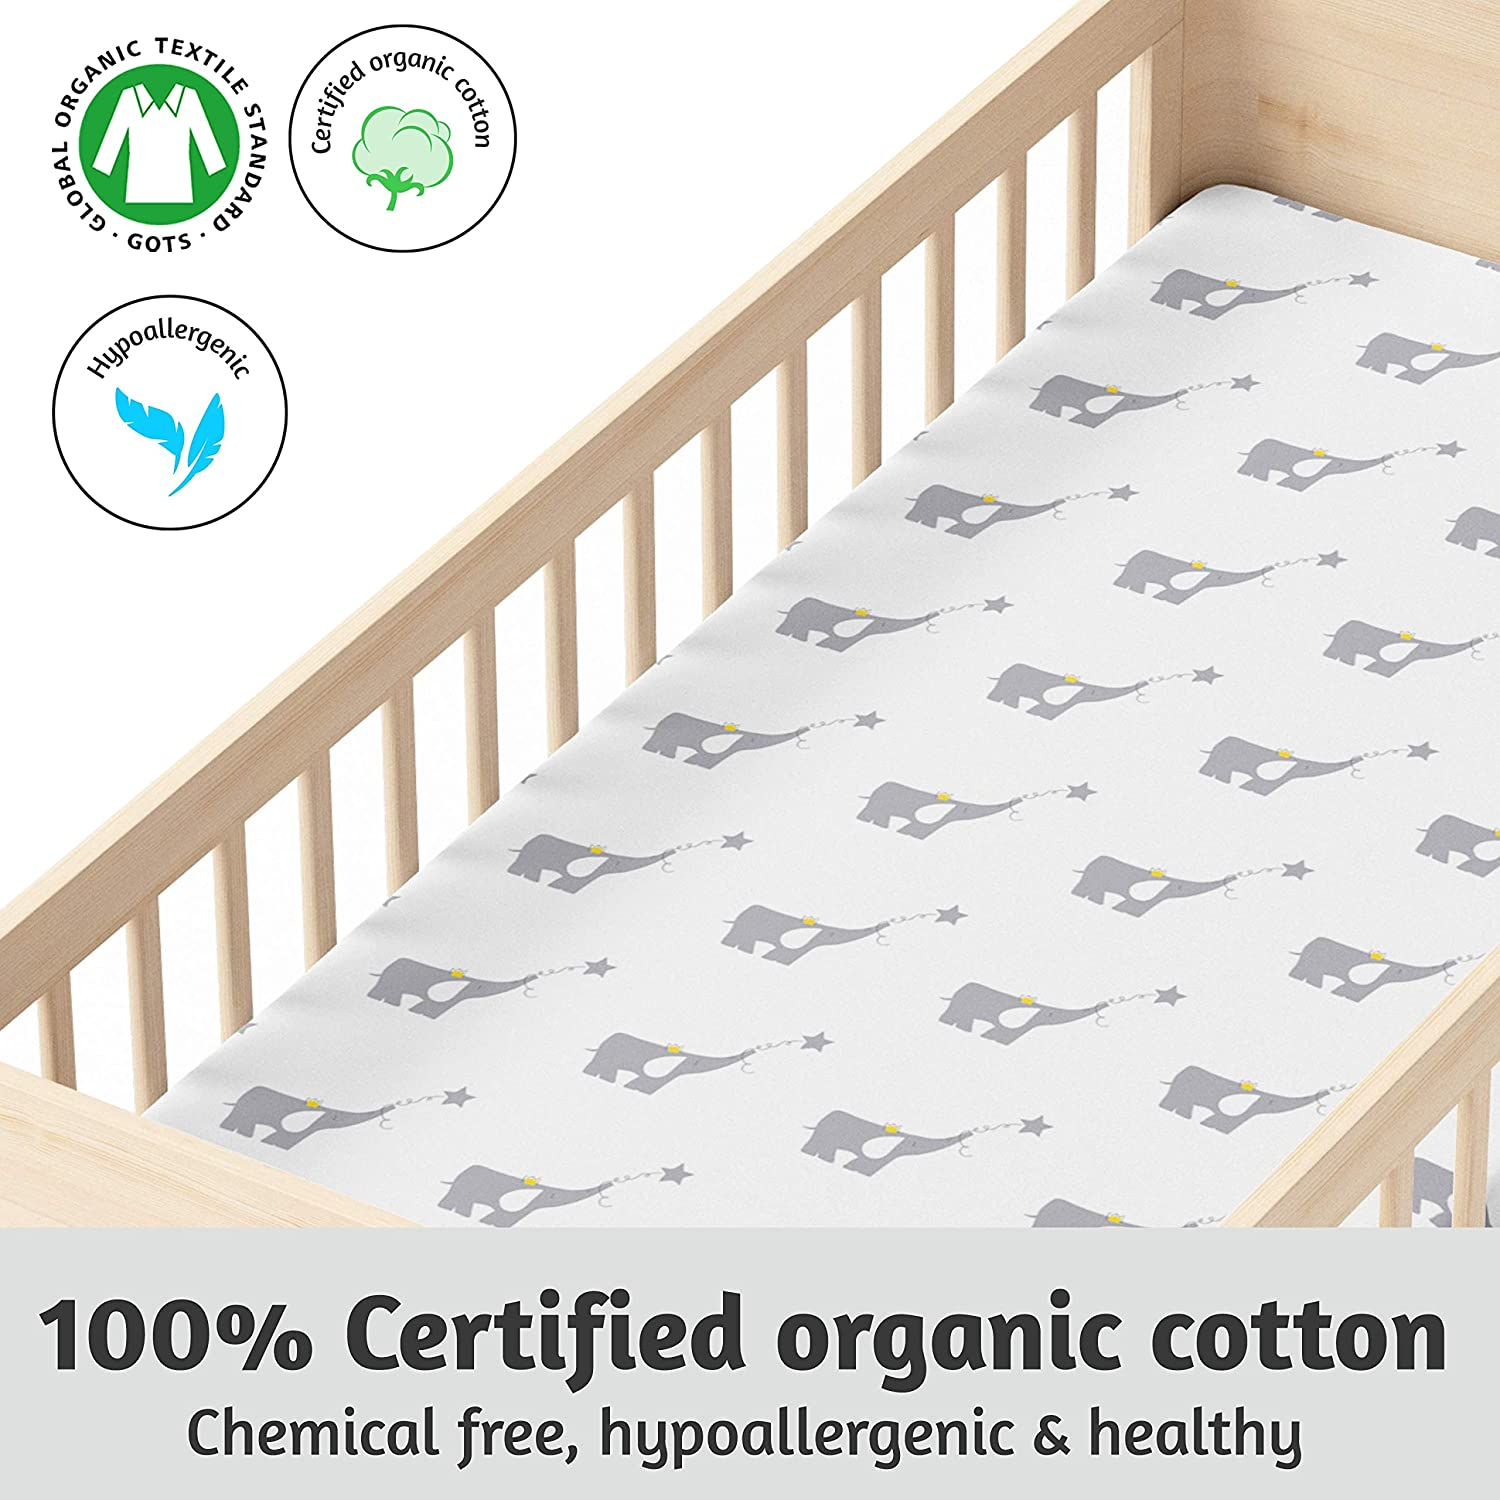 Crib Sheets 100 Certified Organic Jersey Cotton Fitted Crib Sheets For Standard Crib And Toddler Mattresses 2 Pack Super Soft Bed Sheets Unisex Gray Nursery Bedding For Baby Boy Or